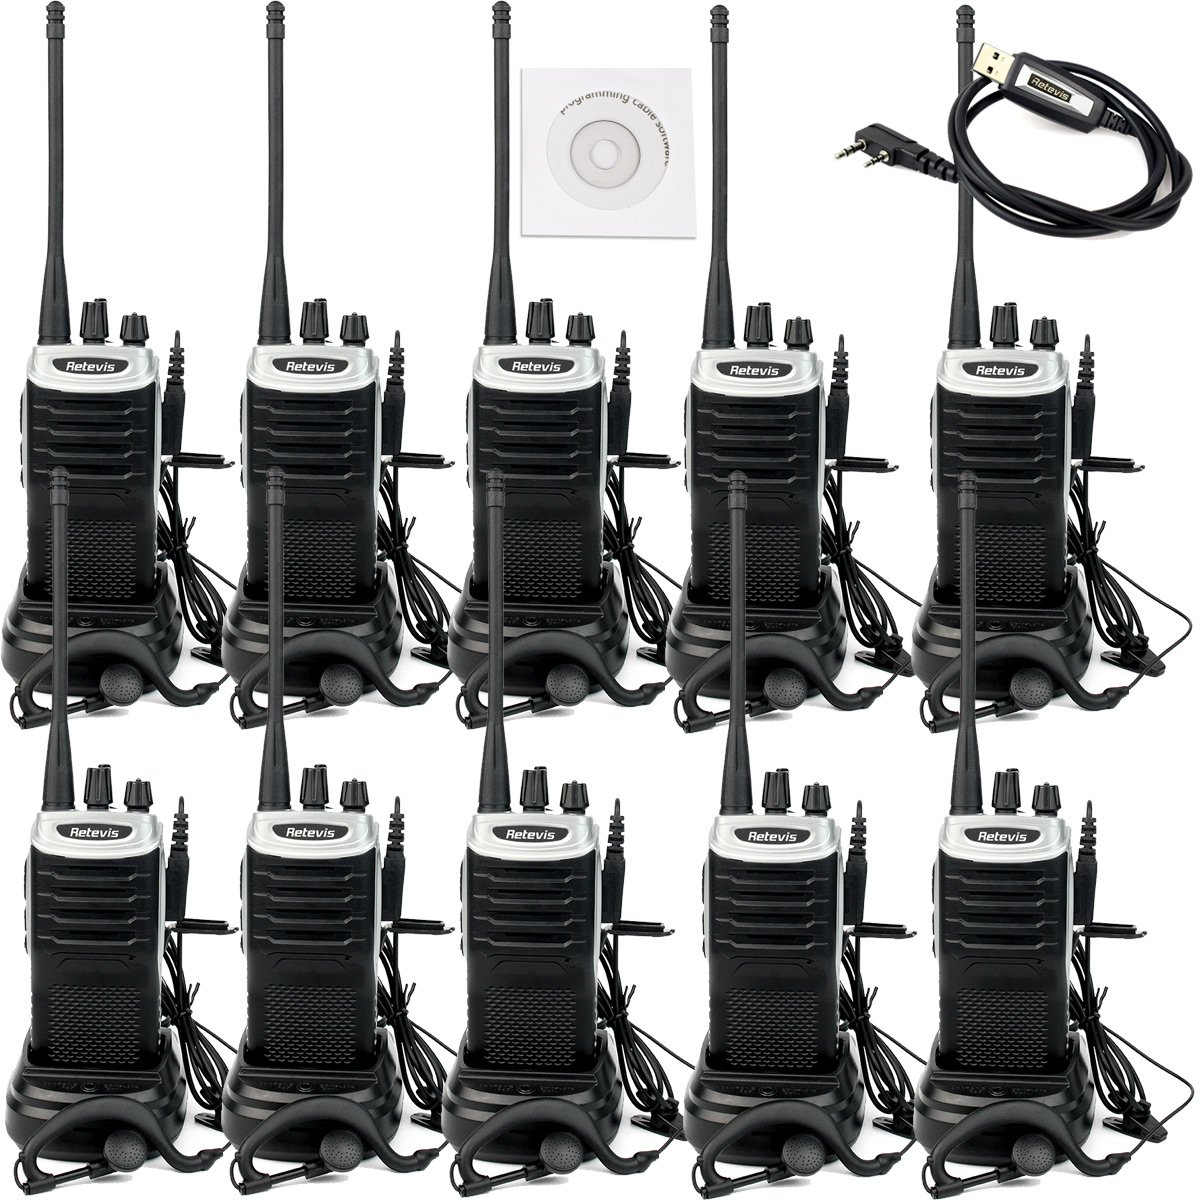 Retevis RT7 Walkie Talkies Rechargeable 3W VOX 16 CH 400-470 MHz FM Radio Two Way Radio with Earpiece (Silver Black Border,10 Pack) and Programming Cable